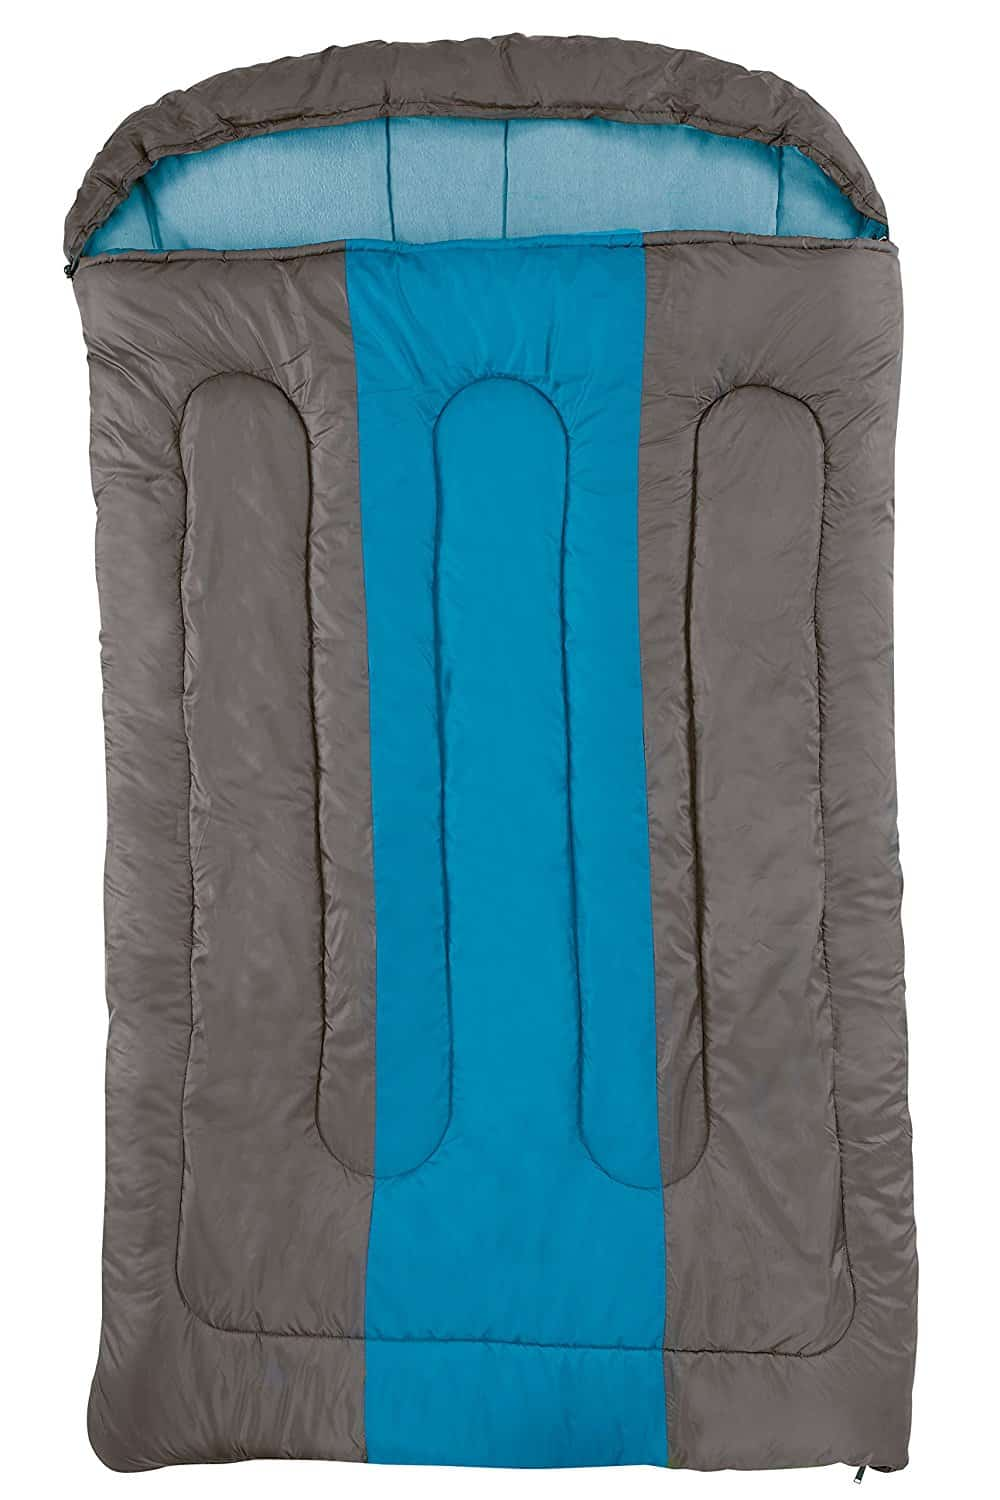 Best Cheap Double Sleeping Bag - Coleman